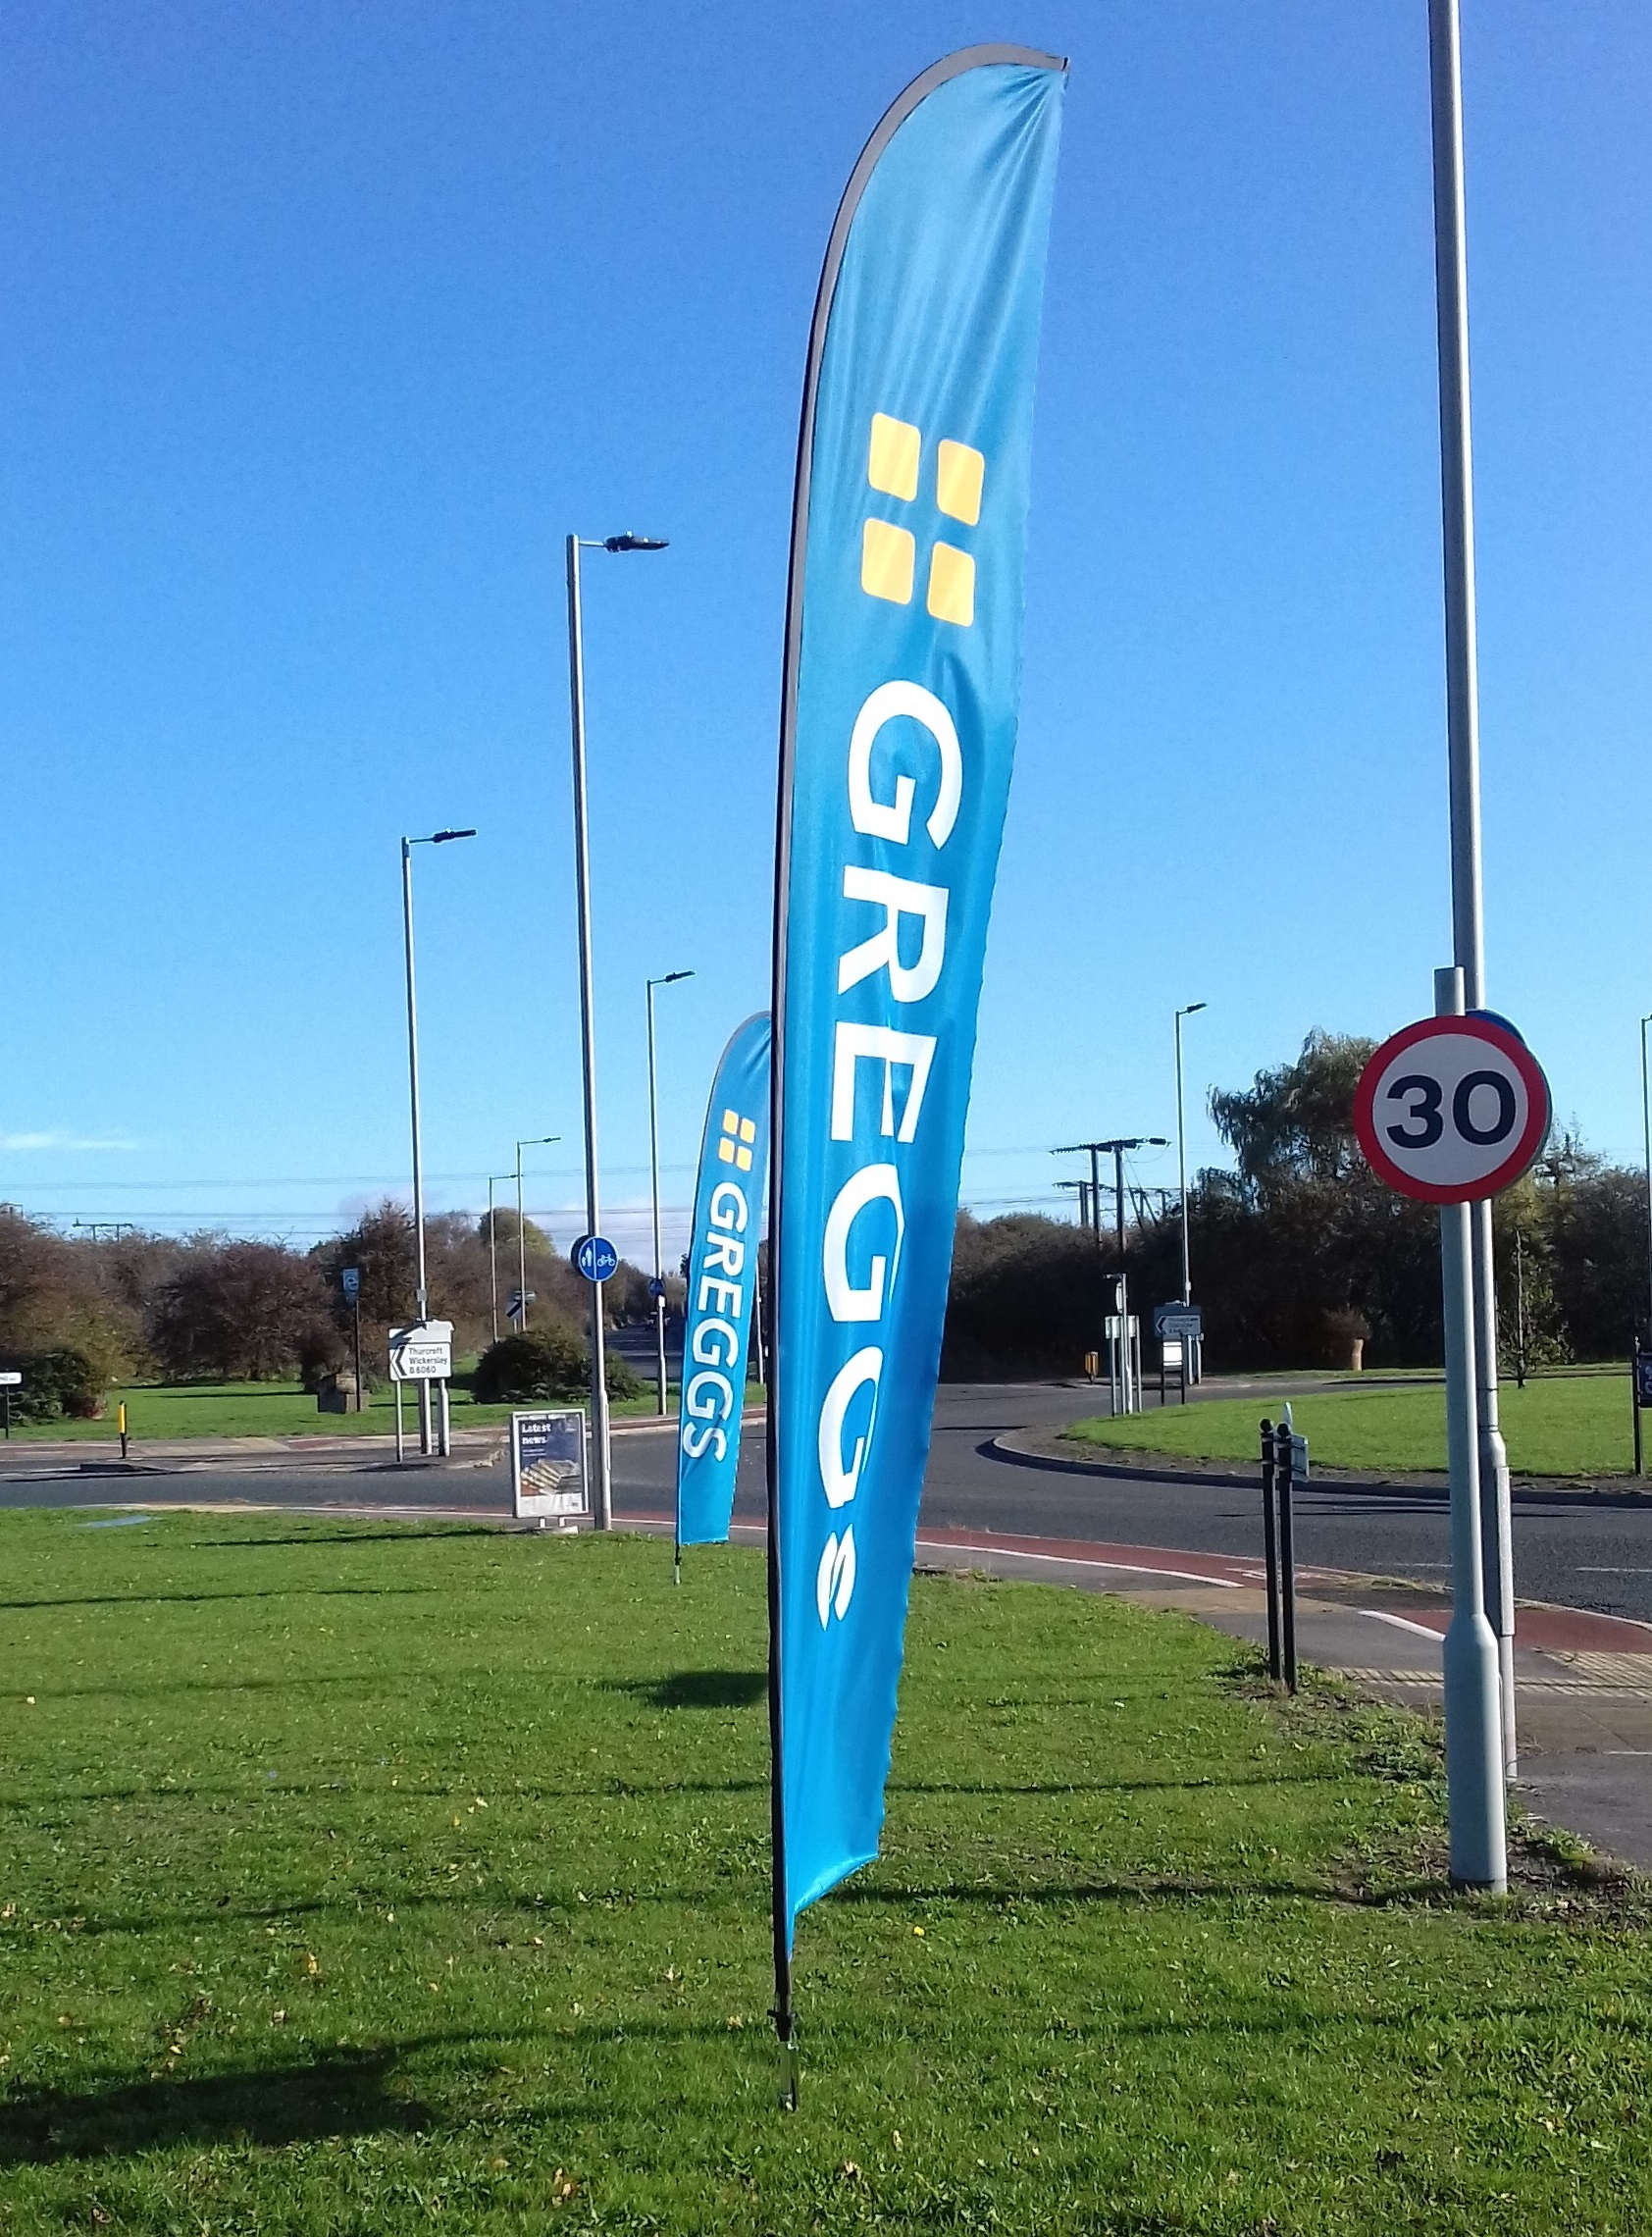 Greggs feather flags